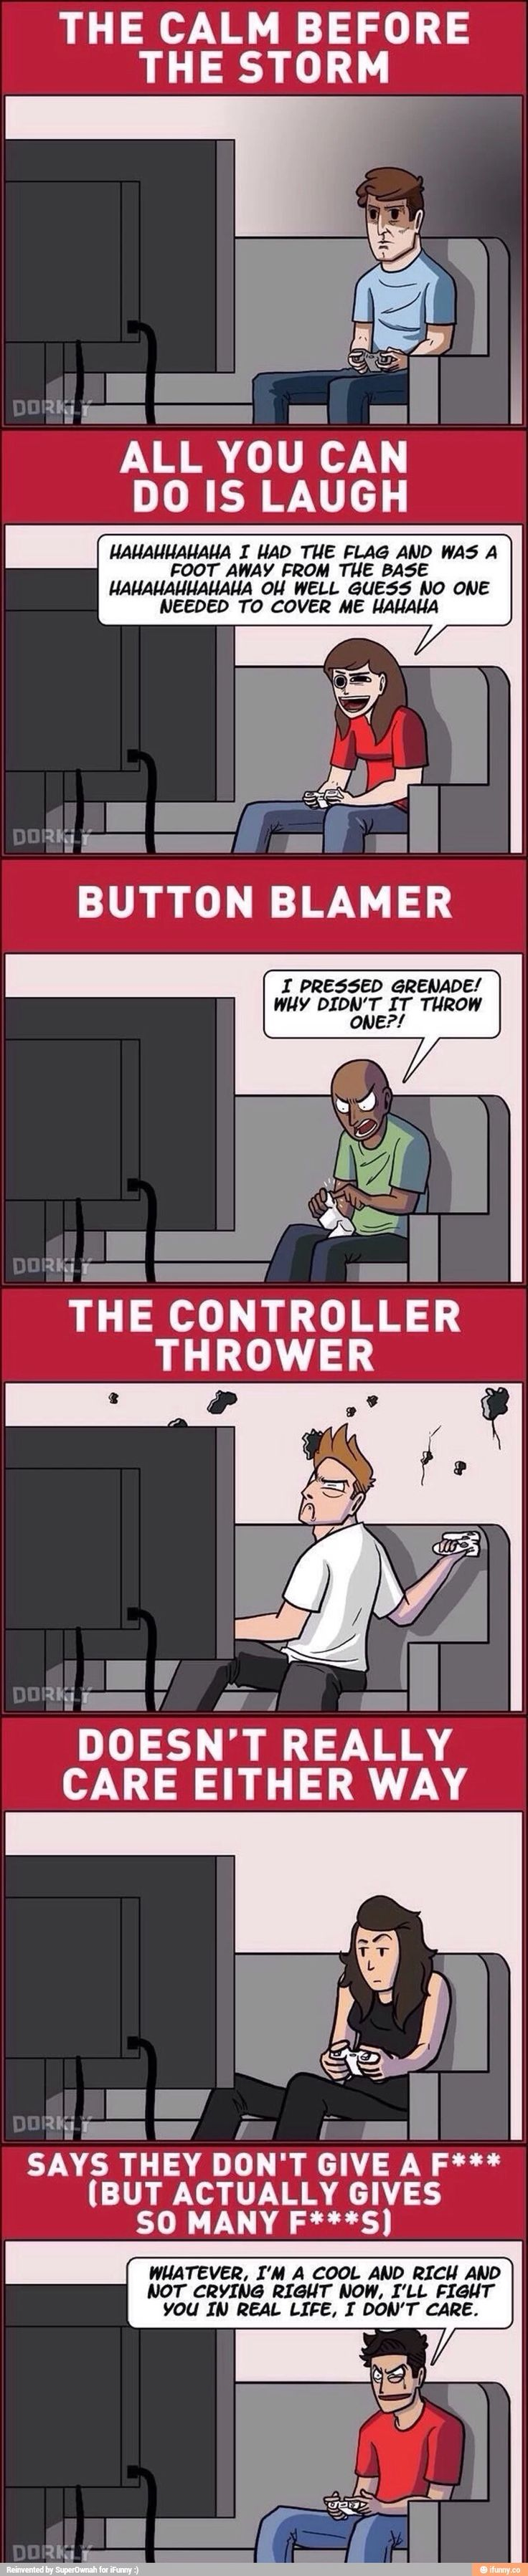 Types of gamers. Im probably the one that laughs uncontrollably haha